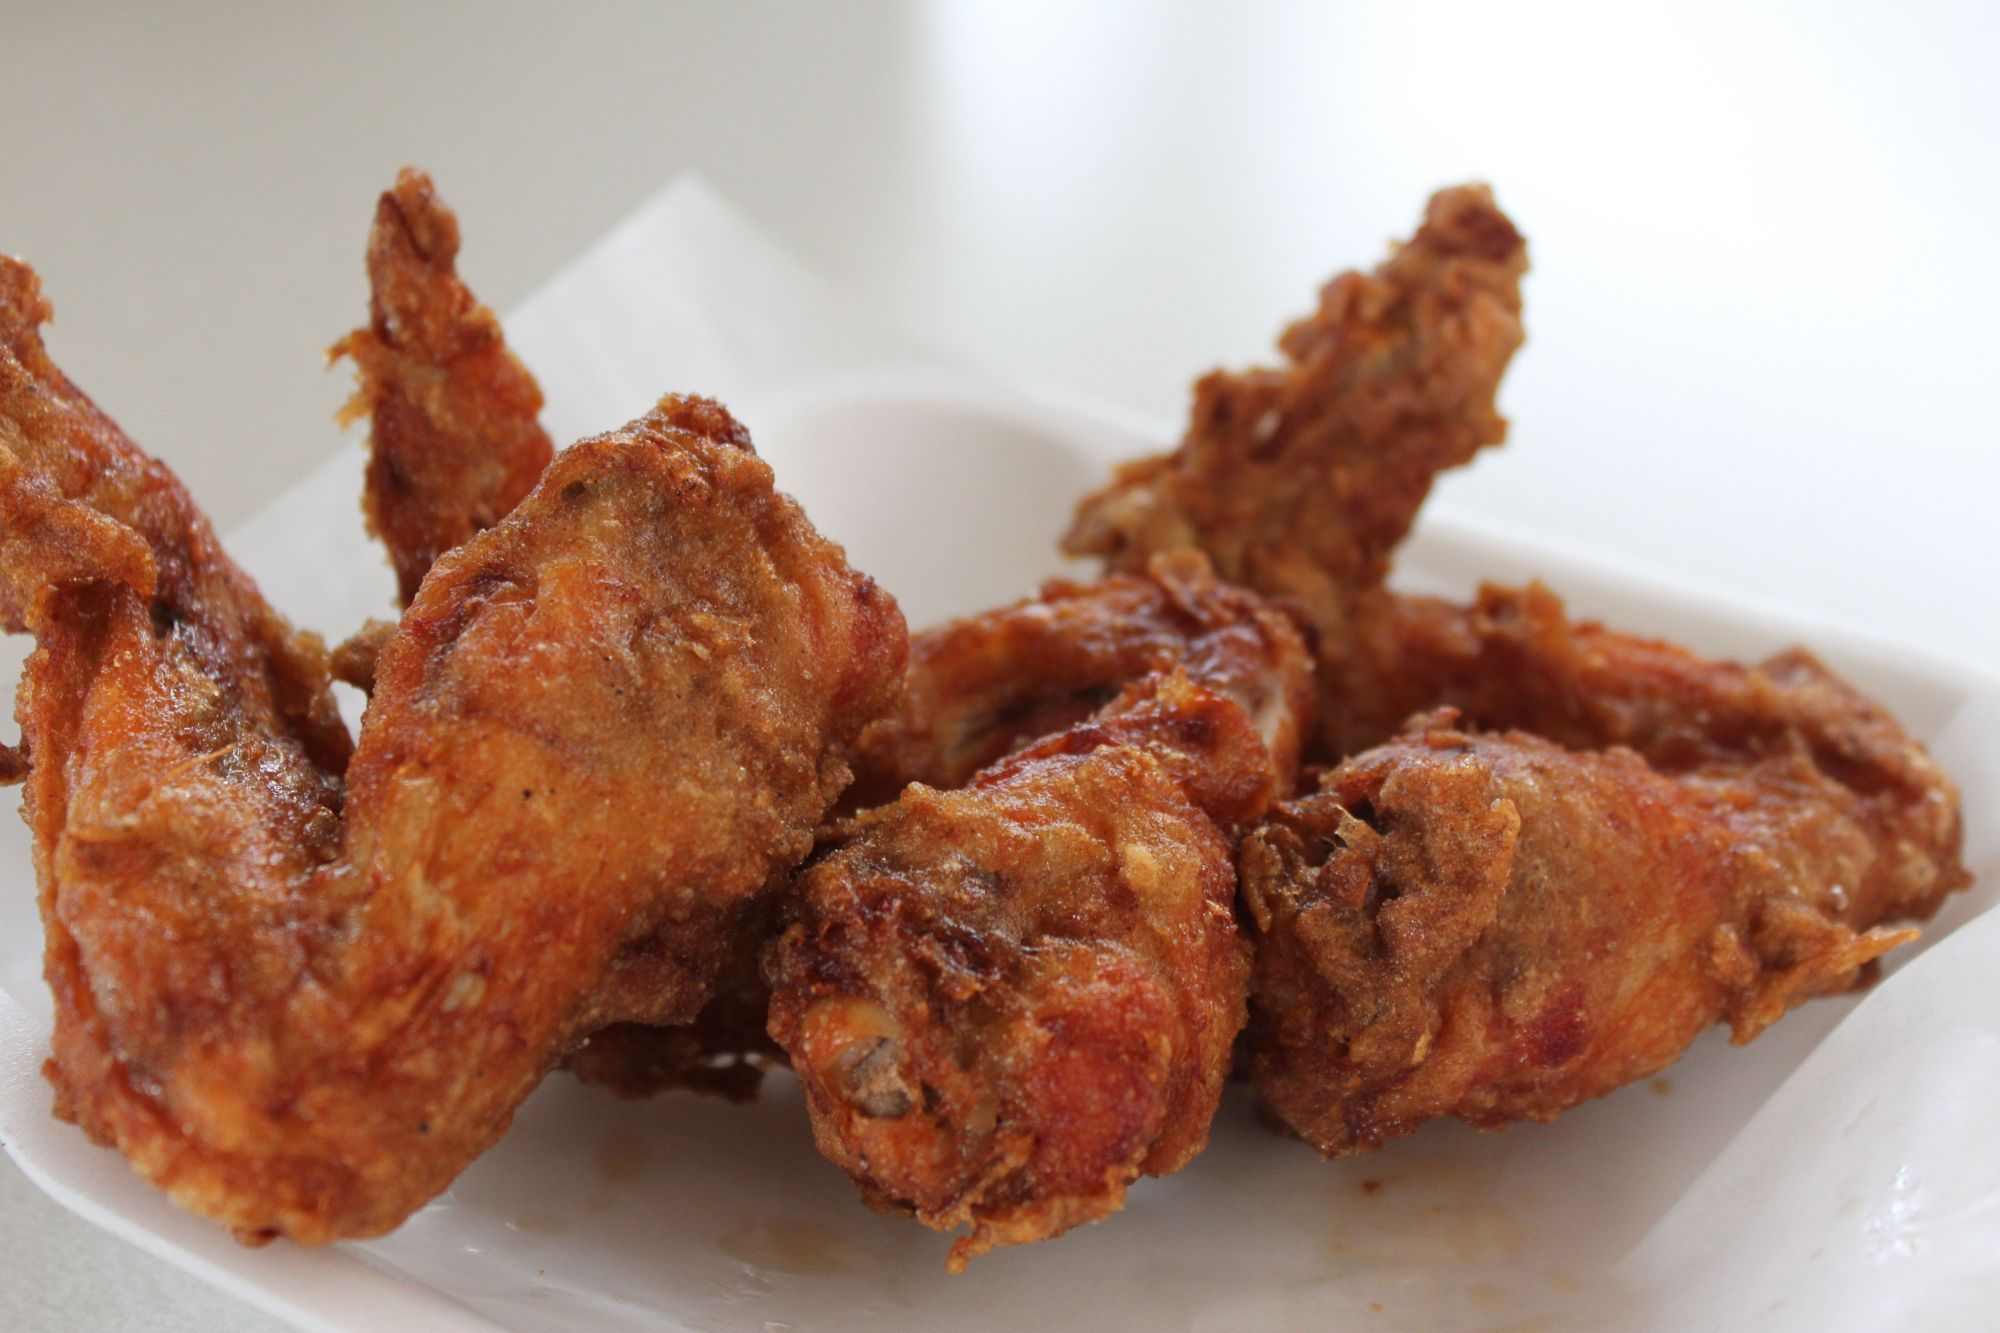 Deep fried wings; Photo Credit: Tara Lee